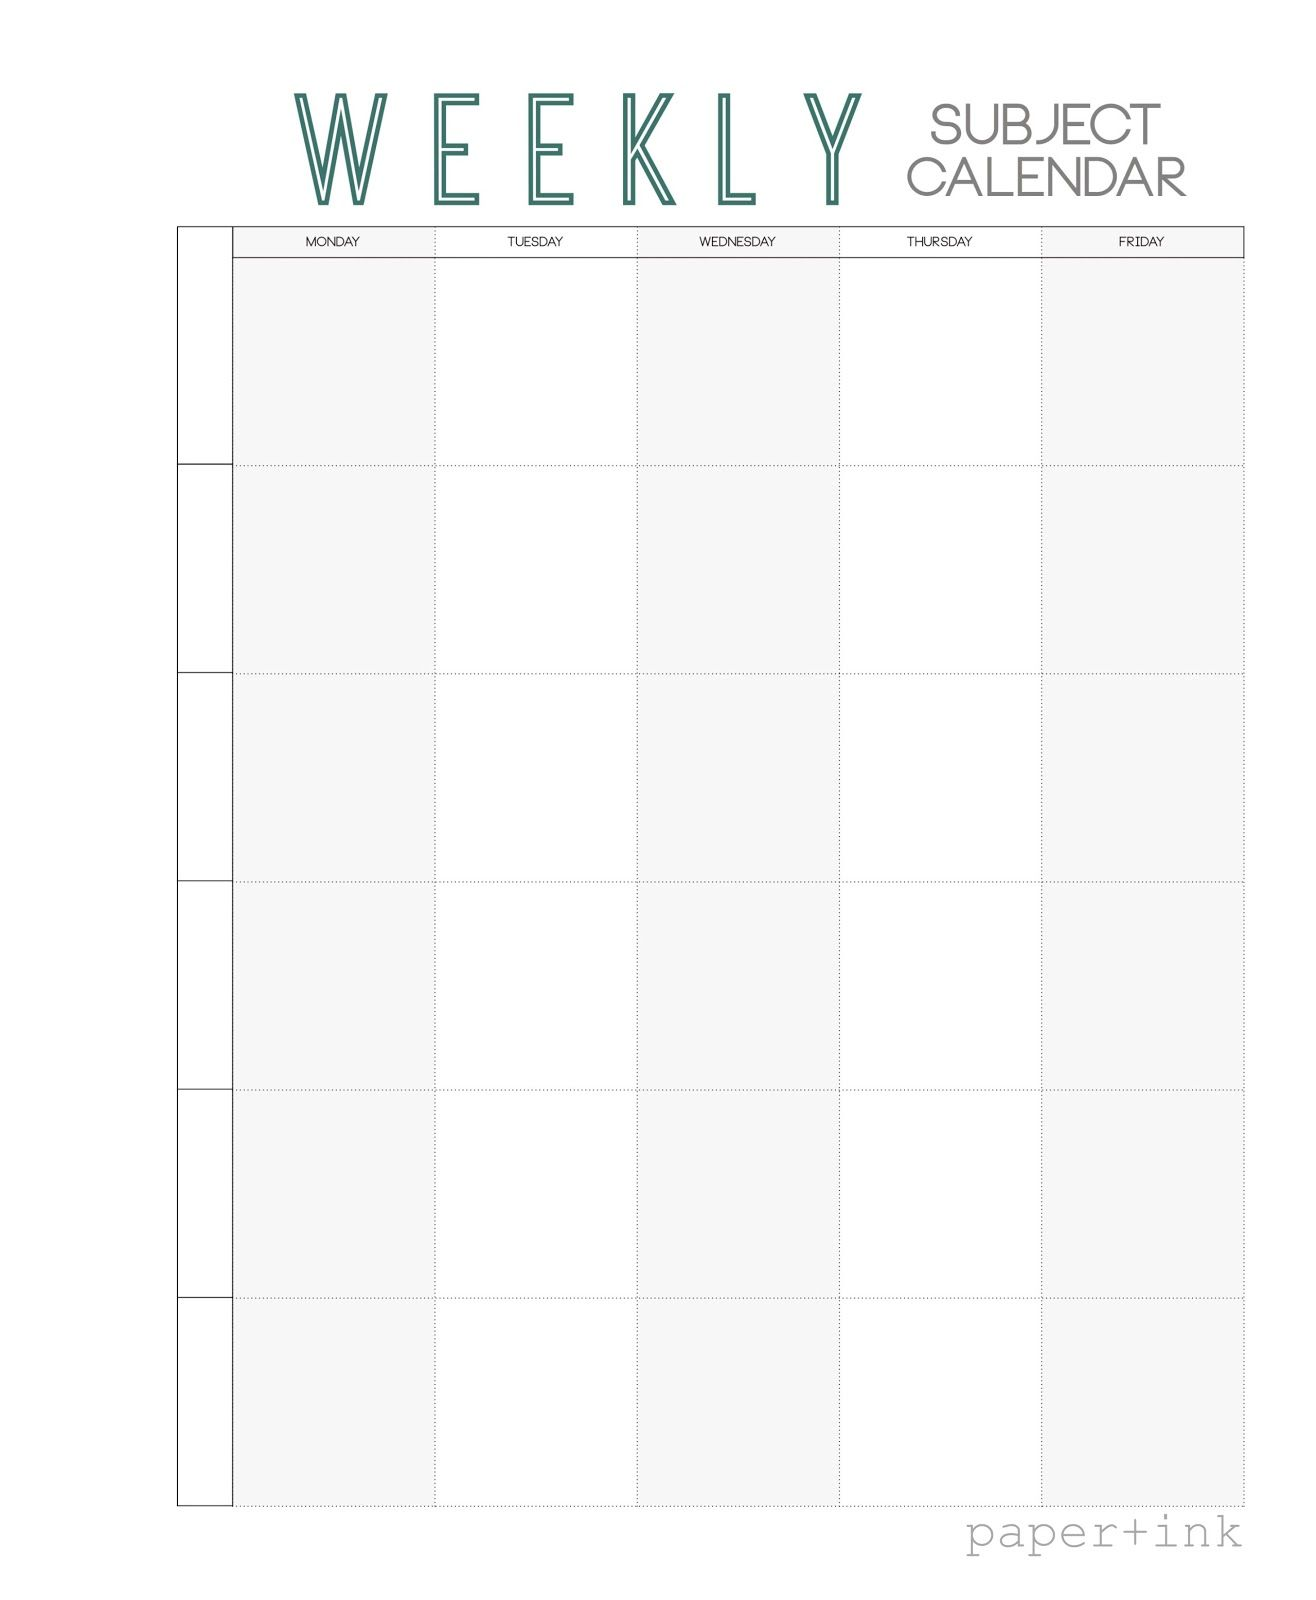 Free Weekly Subject Calendar School Calendar Weekly Planner